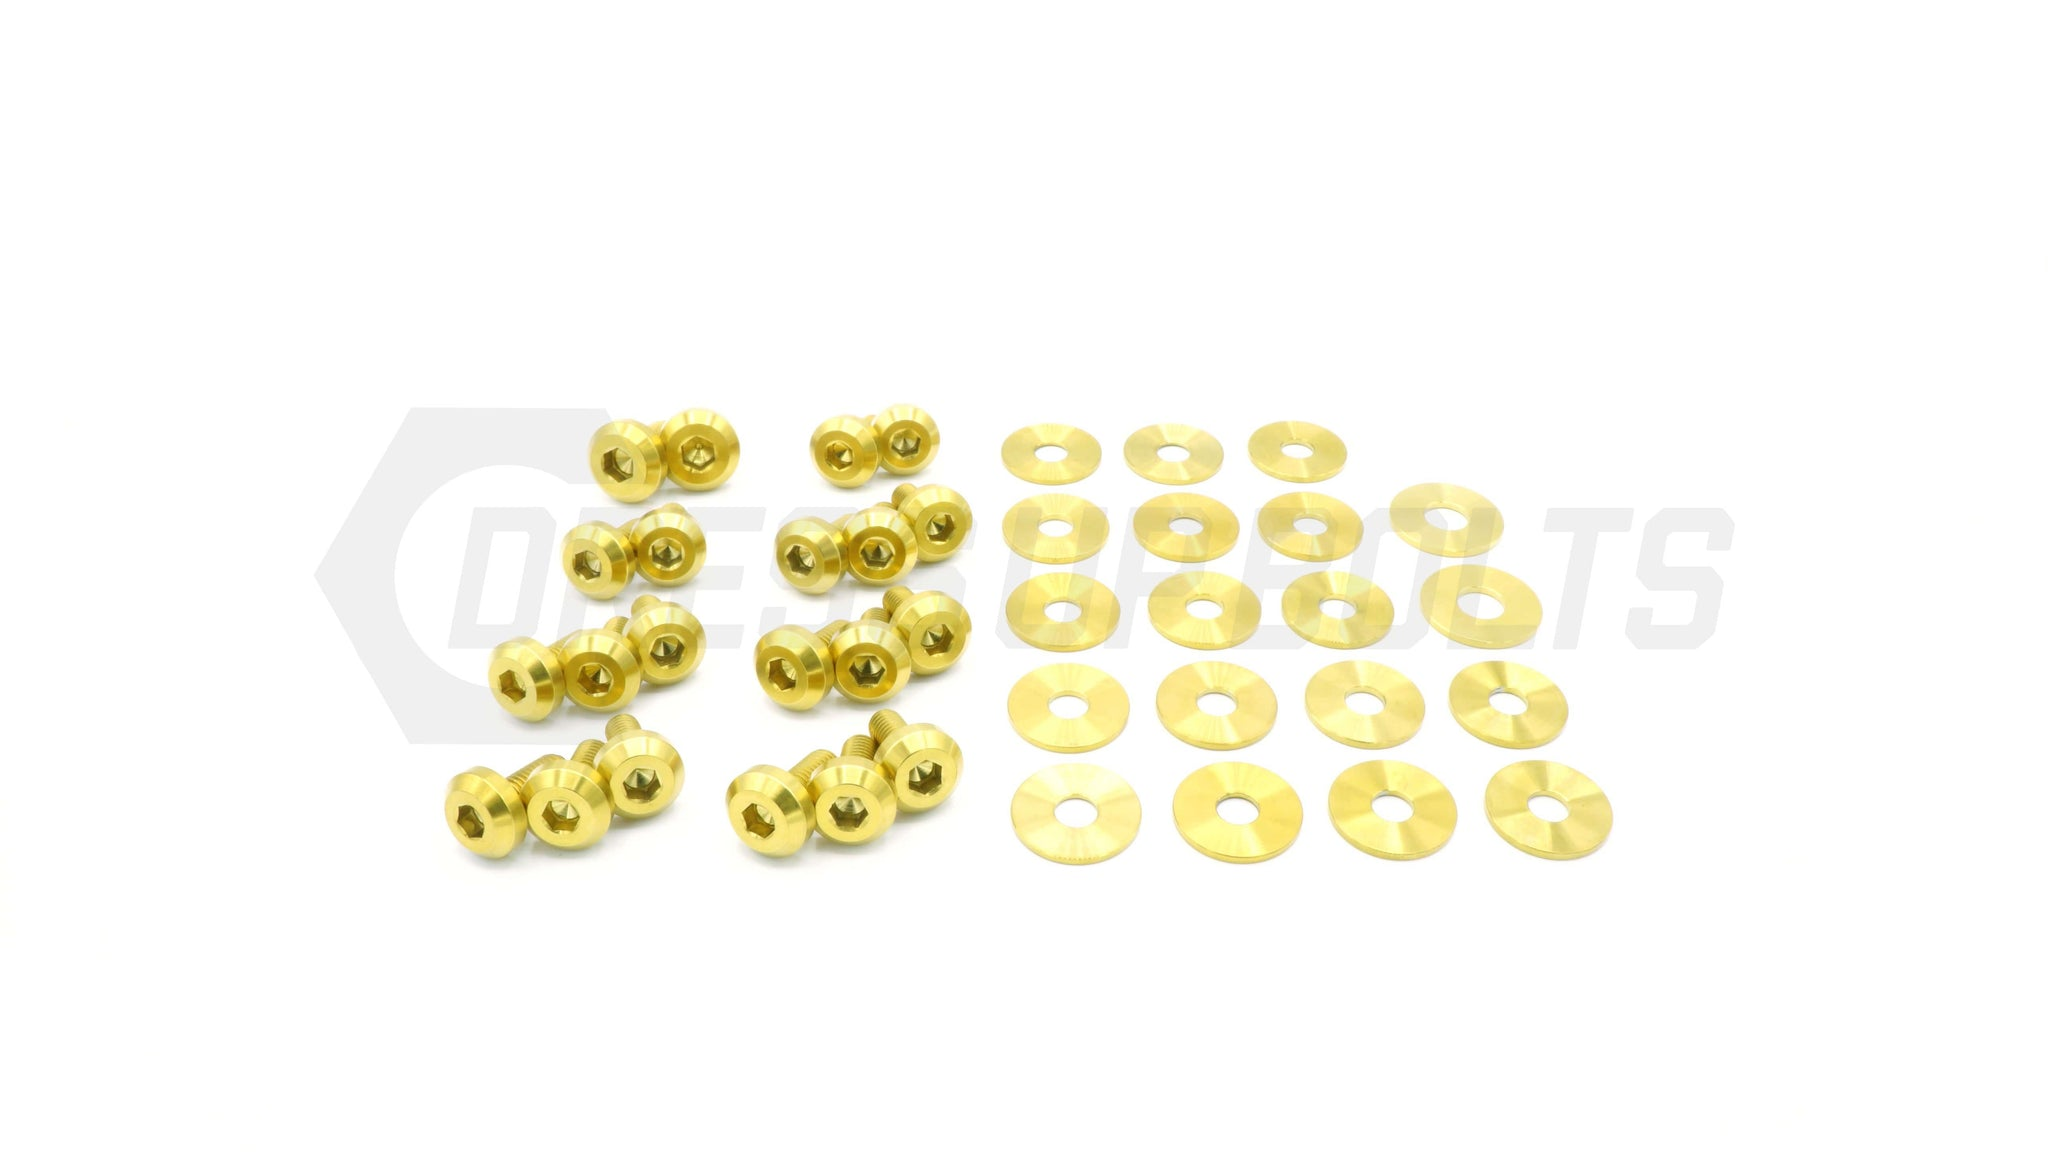 Subaru BRZ (2013-2019) Titanium Dress Up Bolts Partial Engine Bay Kit - DressUpBolts.com